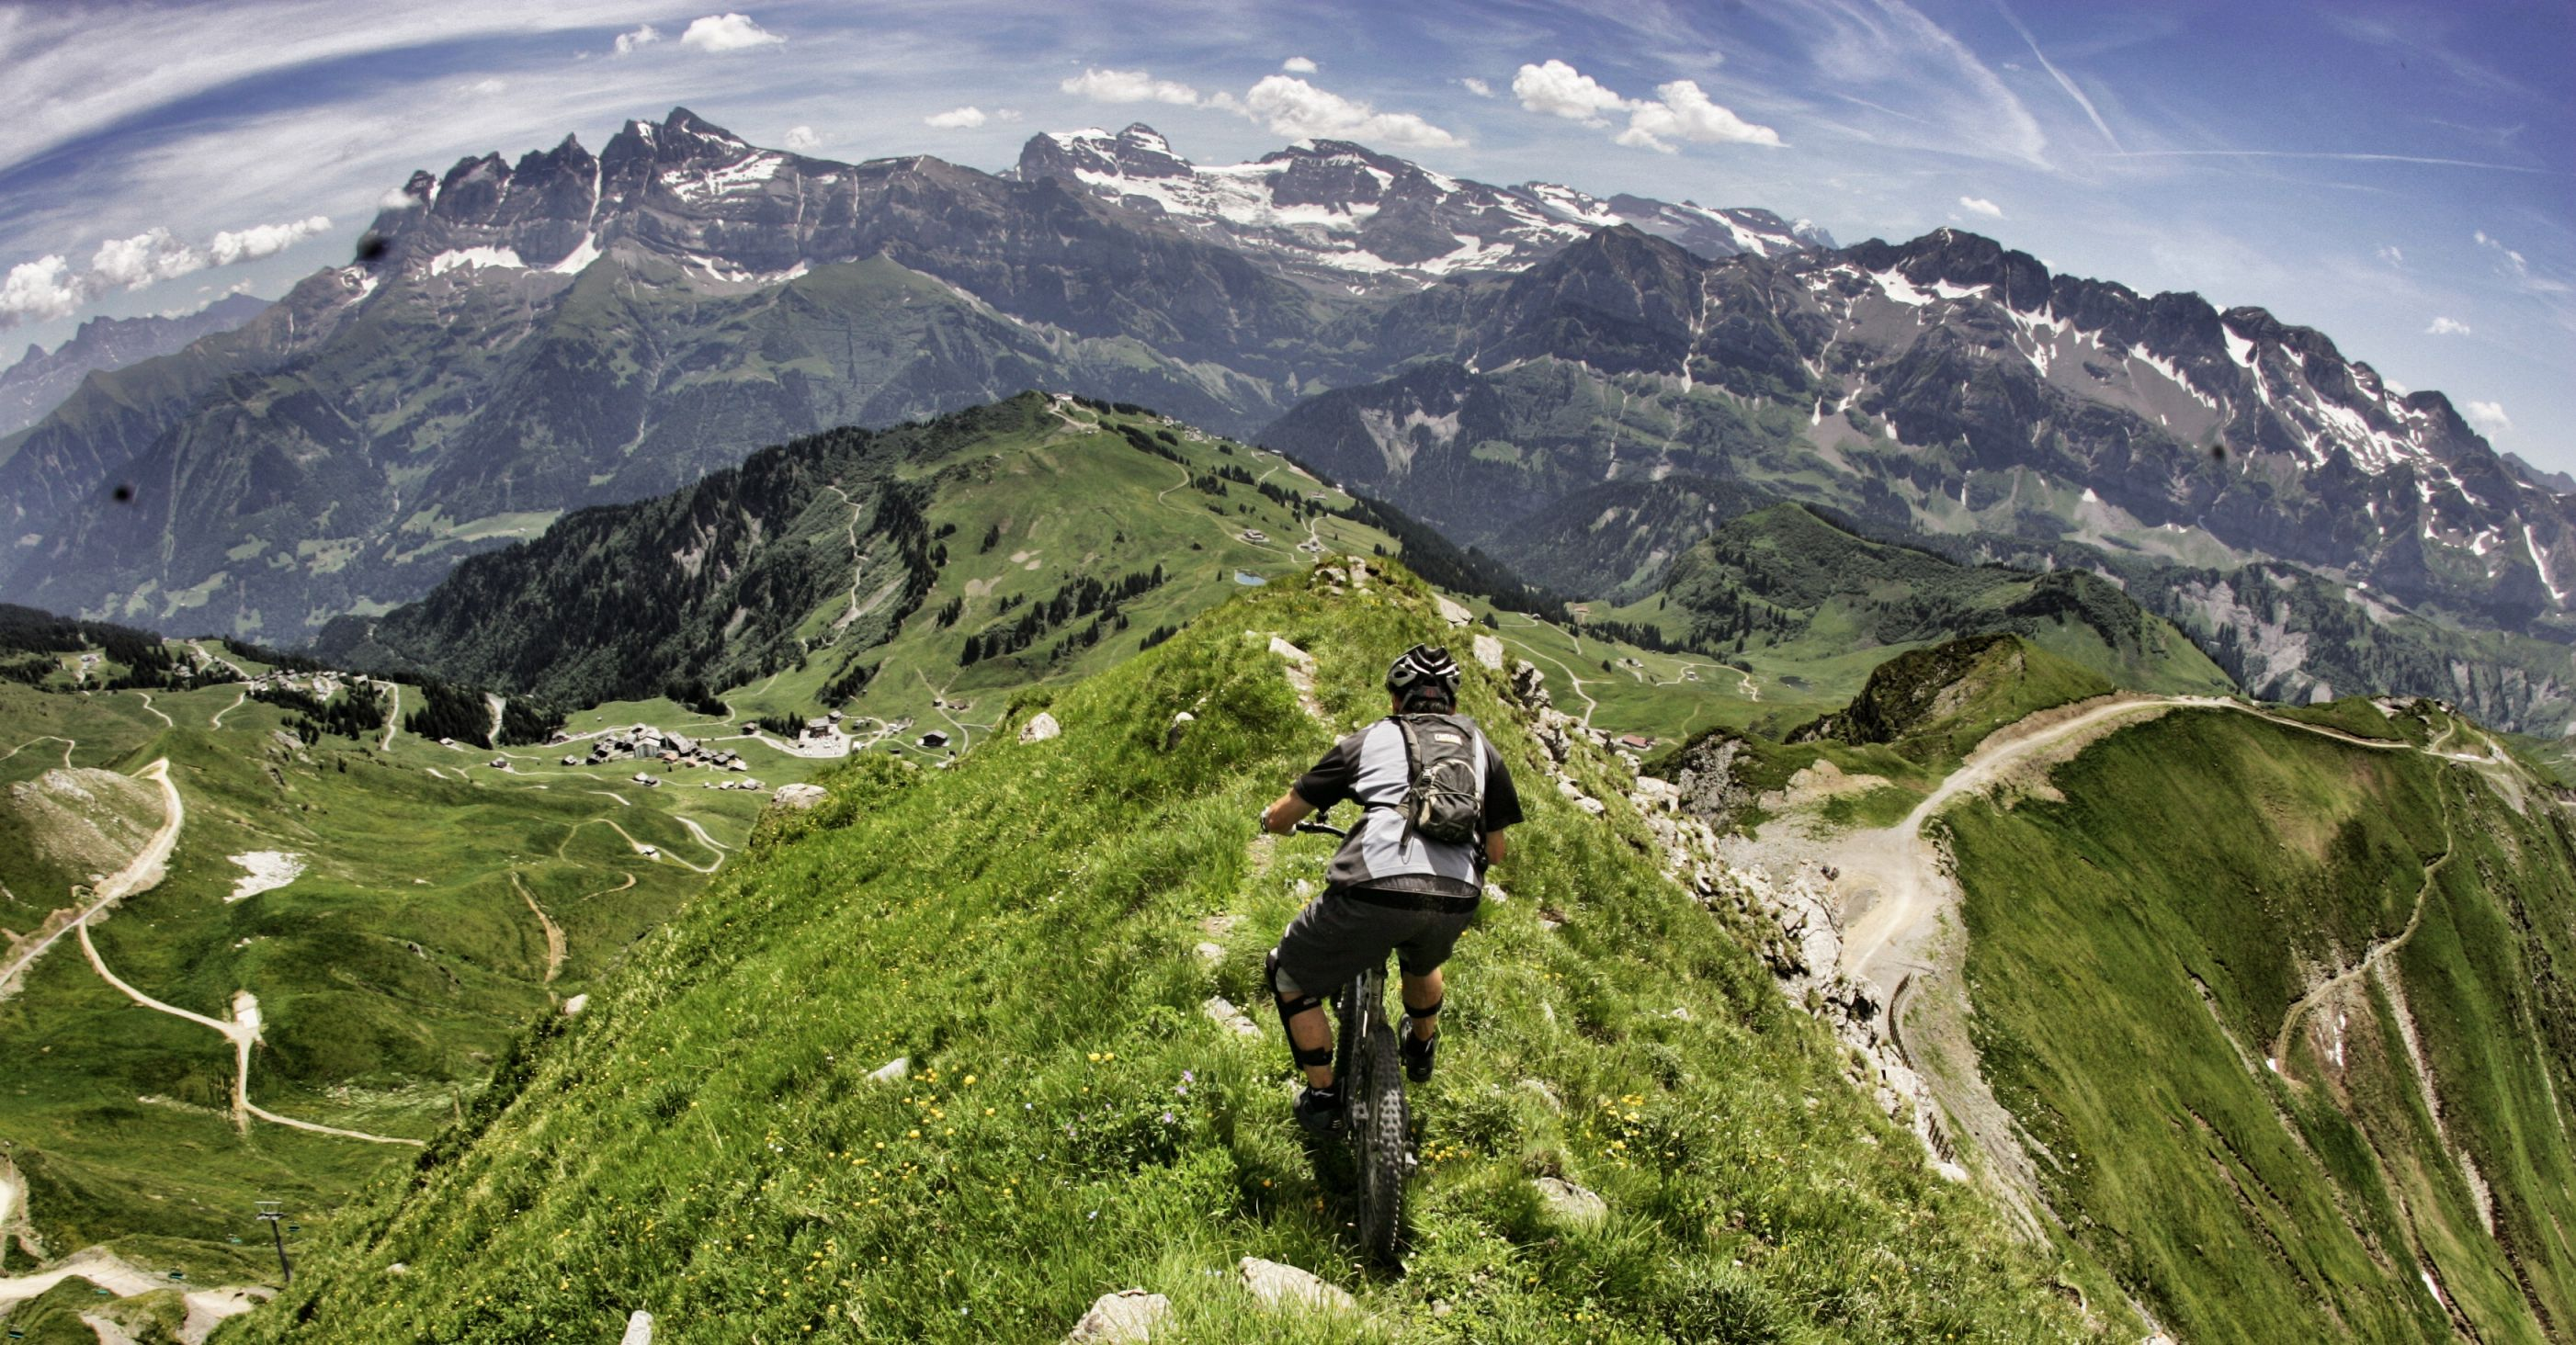 Mountain biking portes du soleil mtb swiss alps epic europe - Portes du soleil horaires ...